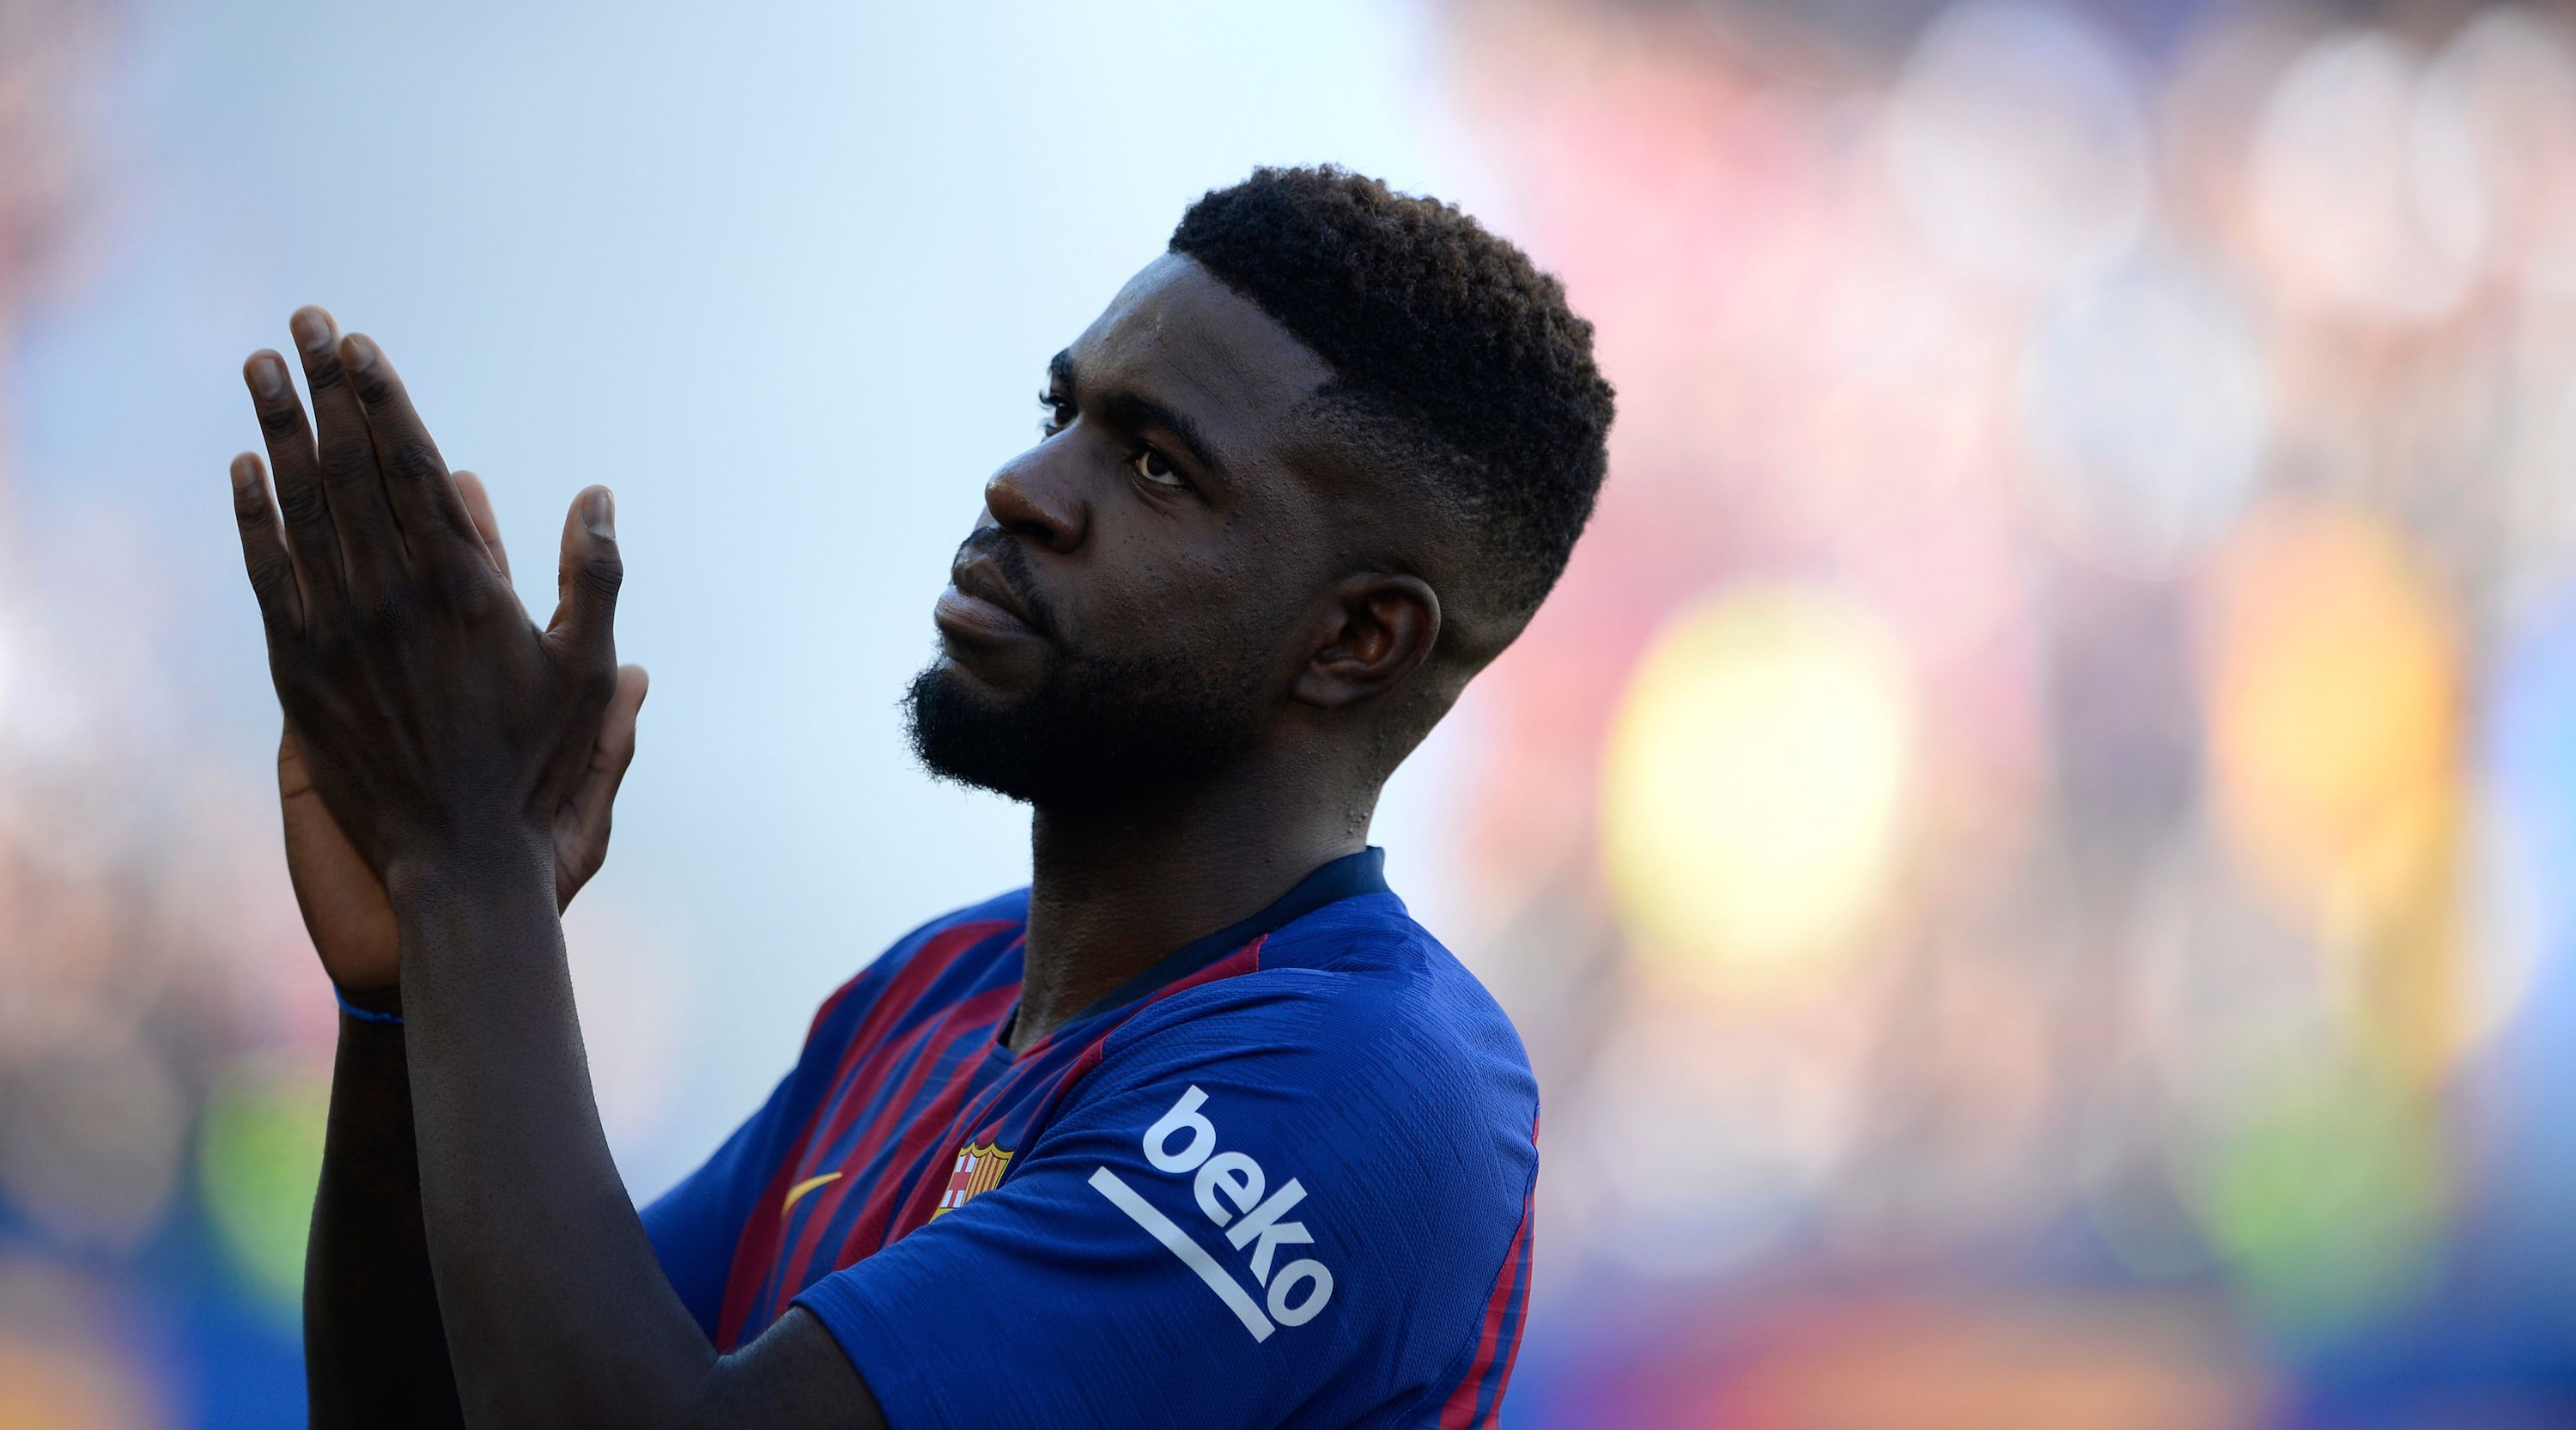 Barcelona's French defender Samuel Umtiti acknowledges fans before the 53rd Joan Gamper Trophy friendly football match between Barcelona and Boca Juniors at the Camp Nou stadium in Barcelona on August 15, 2018. (Photo by Josep LAGO / AFP) (Photo credit should read JOSEP LAGO/AFP/Getty Images)